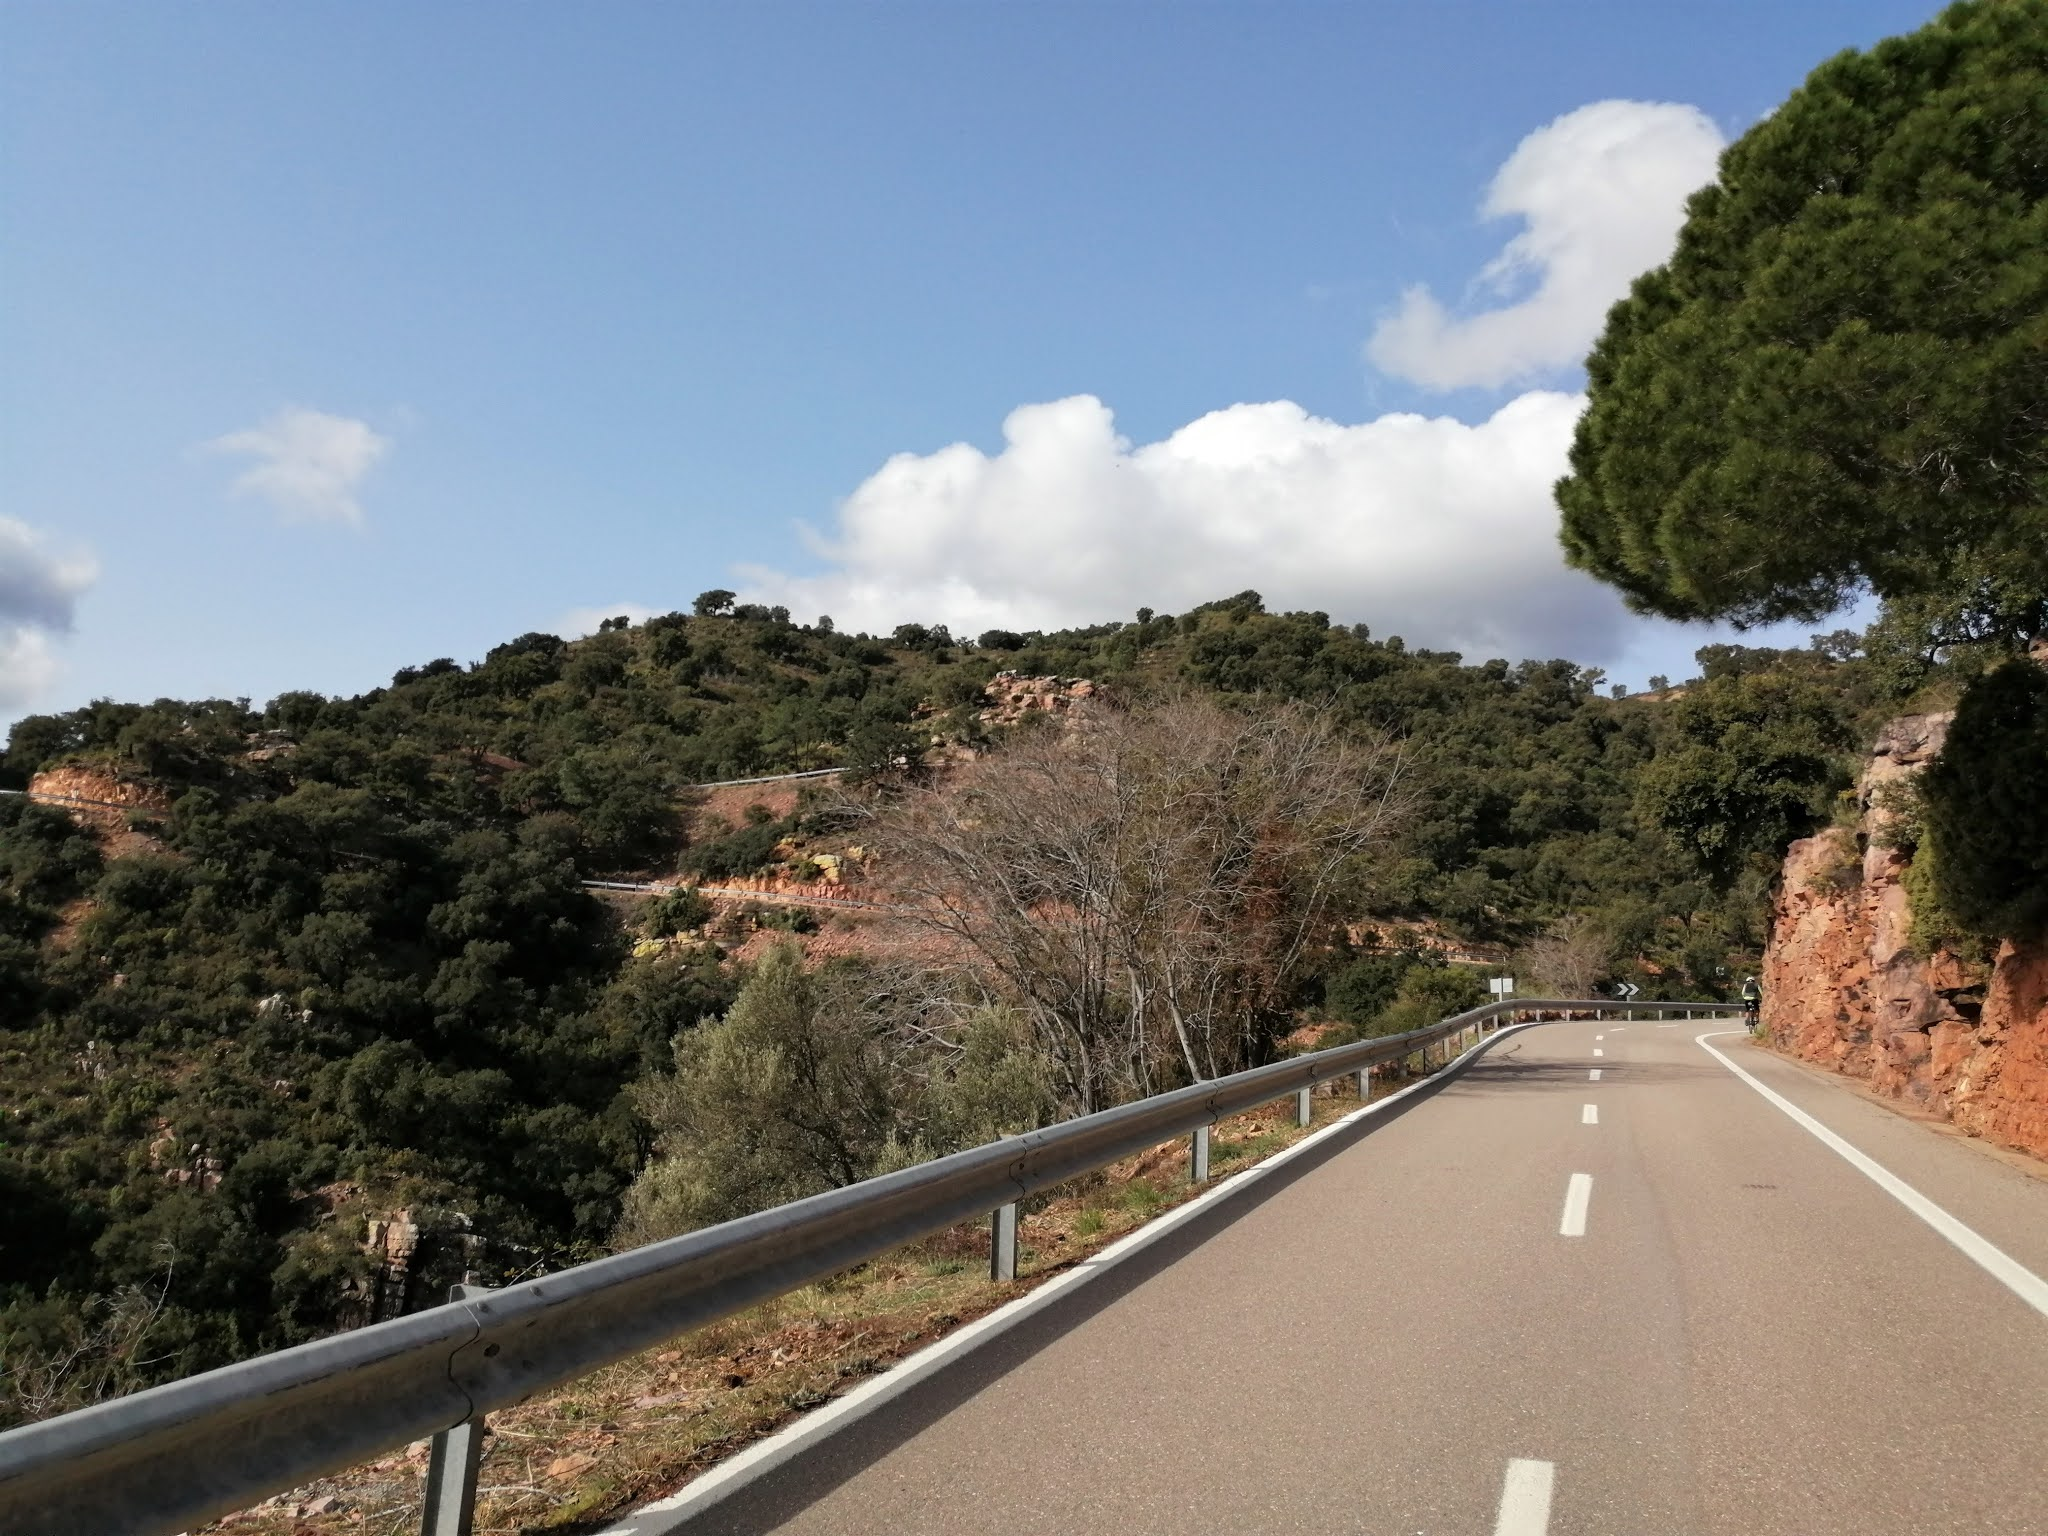 The curved road of Port d'Eslida, Castellón